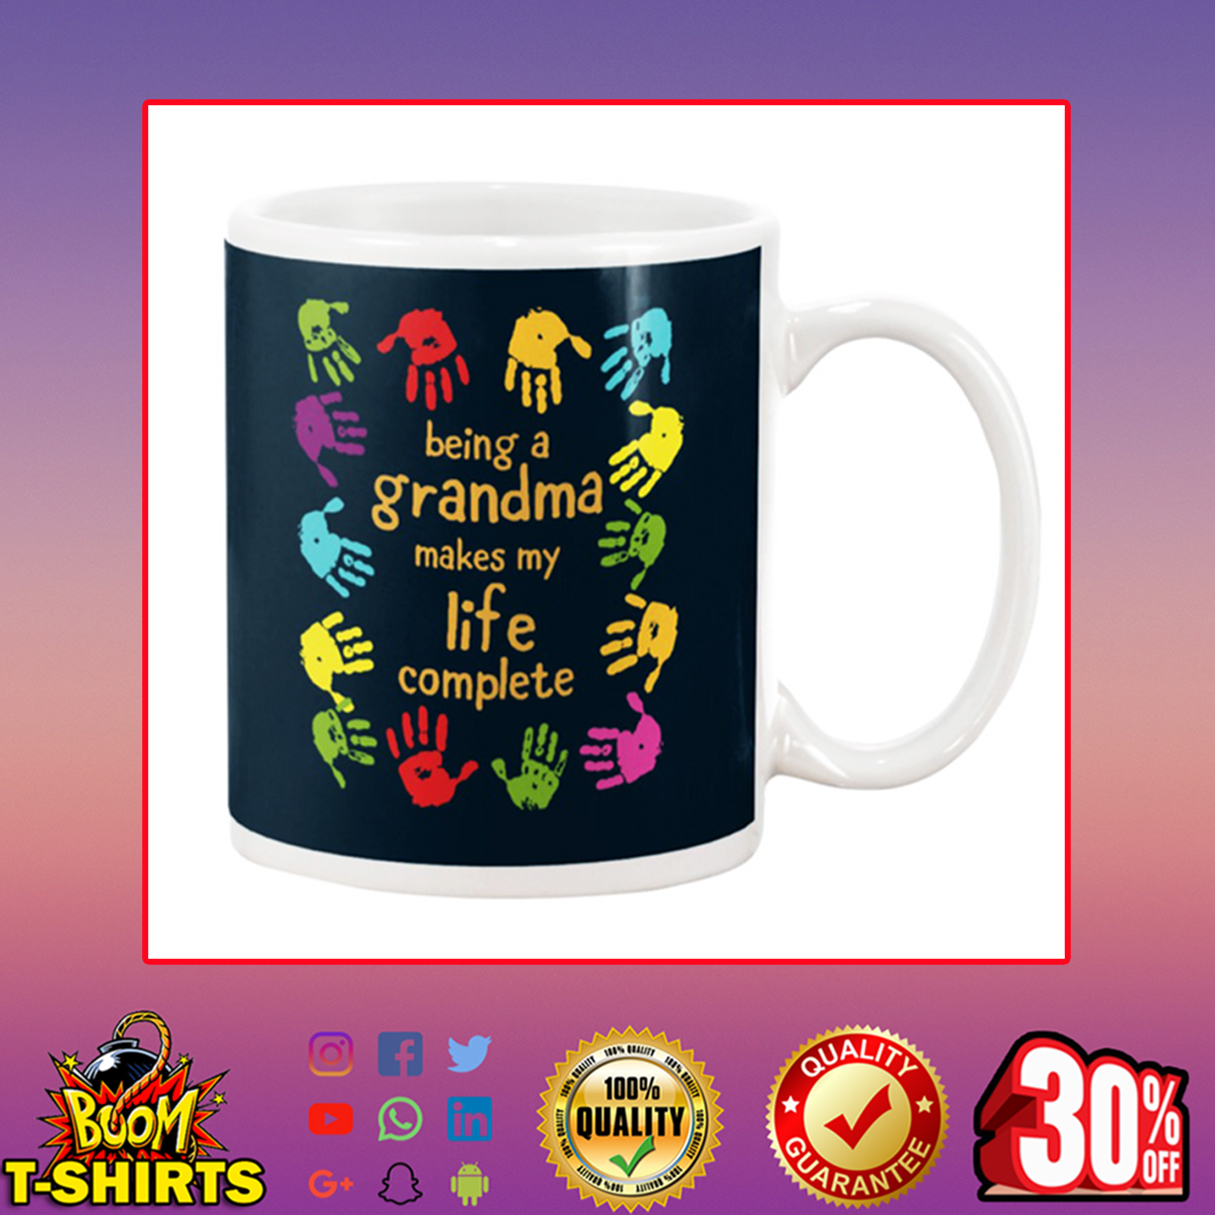 Handprint Being a grandma makes my life complete mug - navy